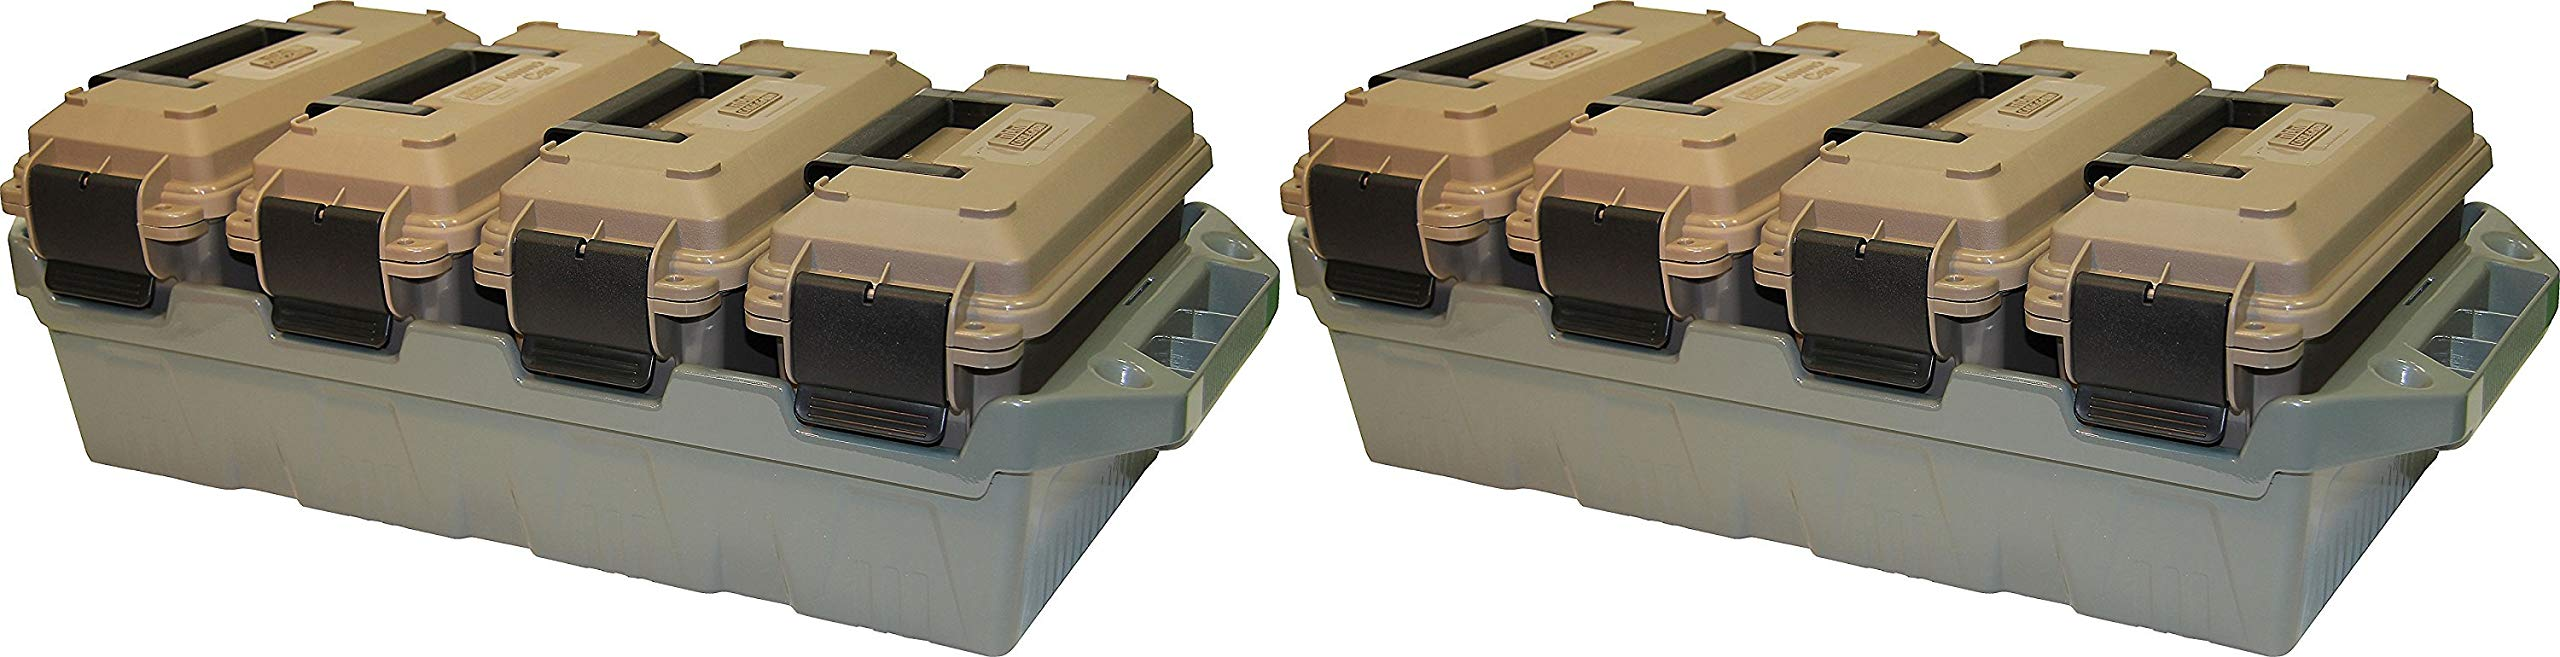 MTM AC4C Ammo Crate (4-Can), 2 Pack